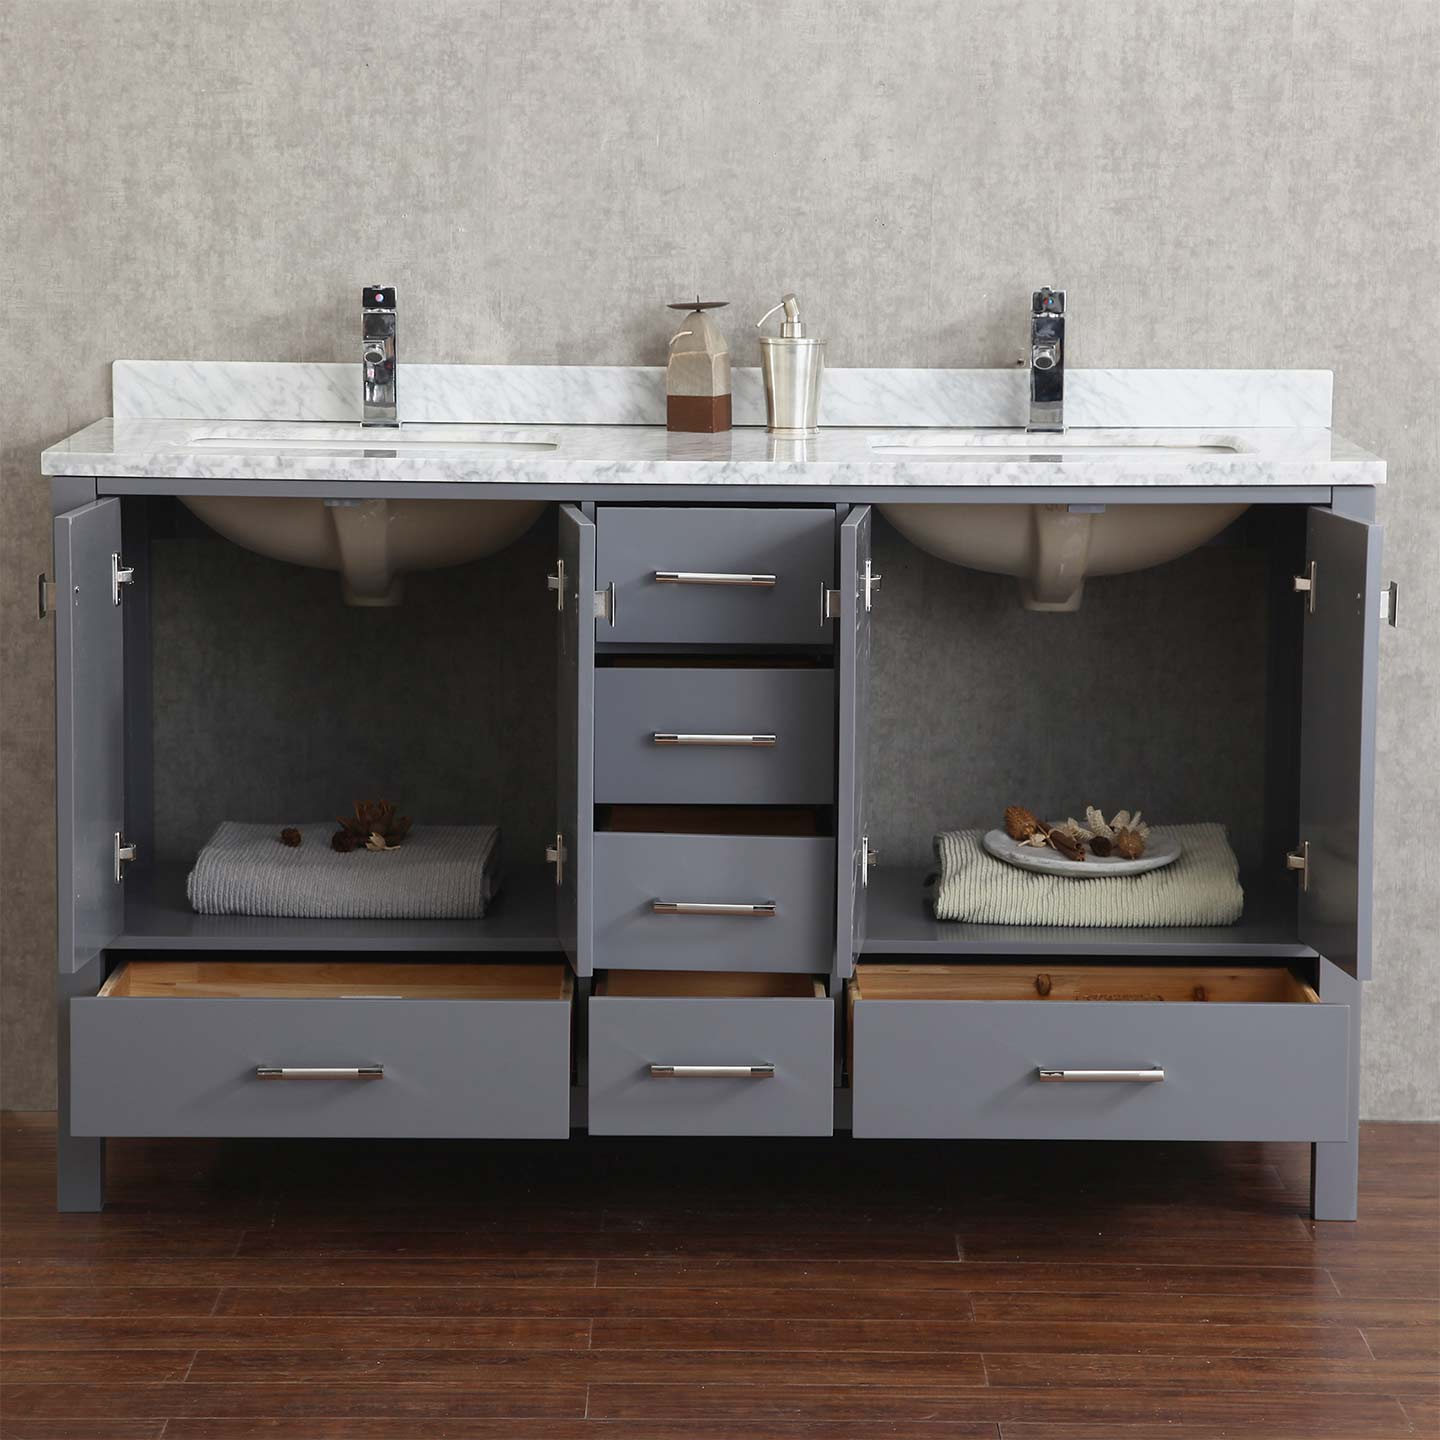 60 Double Sink Bathroom Vanity. Vicent 60  Solid Wood Double Bathroom Vanity in Charcoal Grey HM 13001 WMSQ CG Buy Vincent